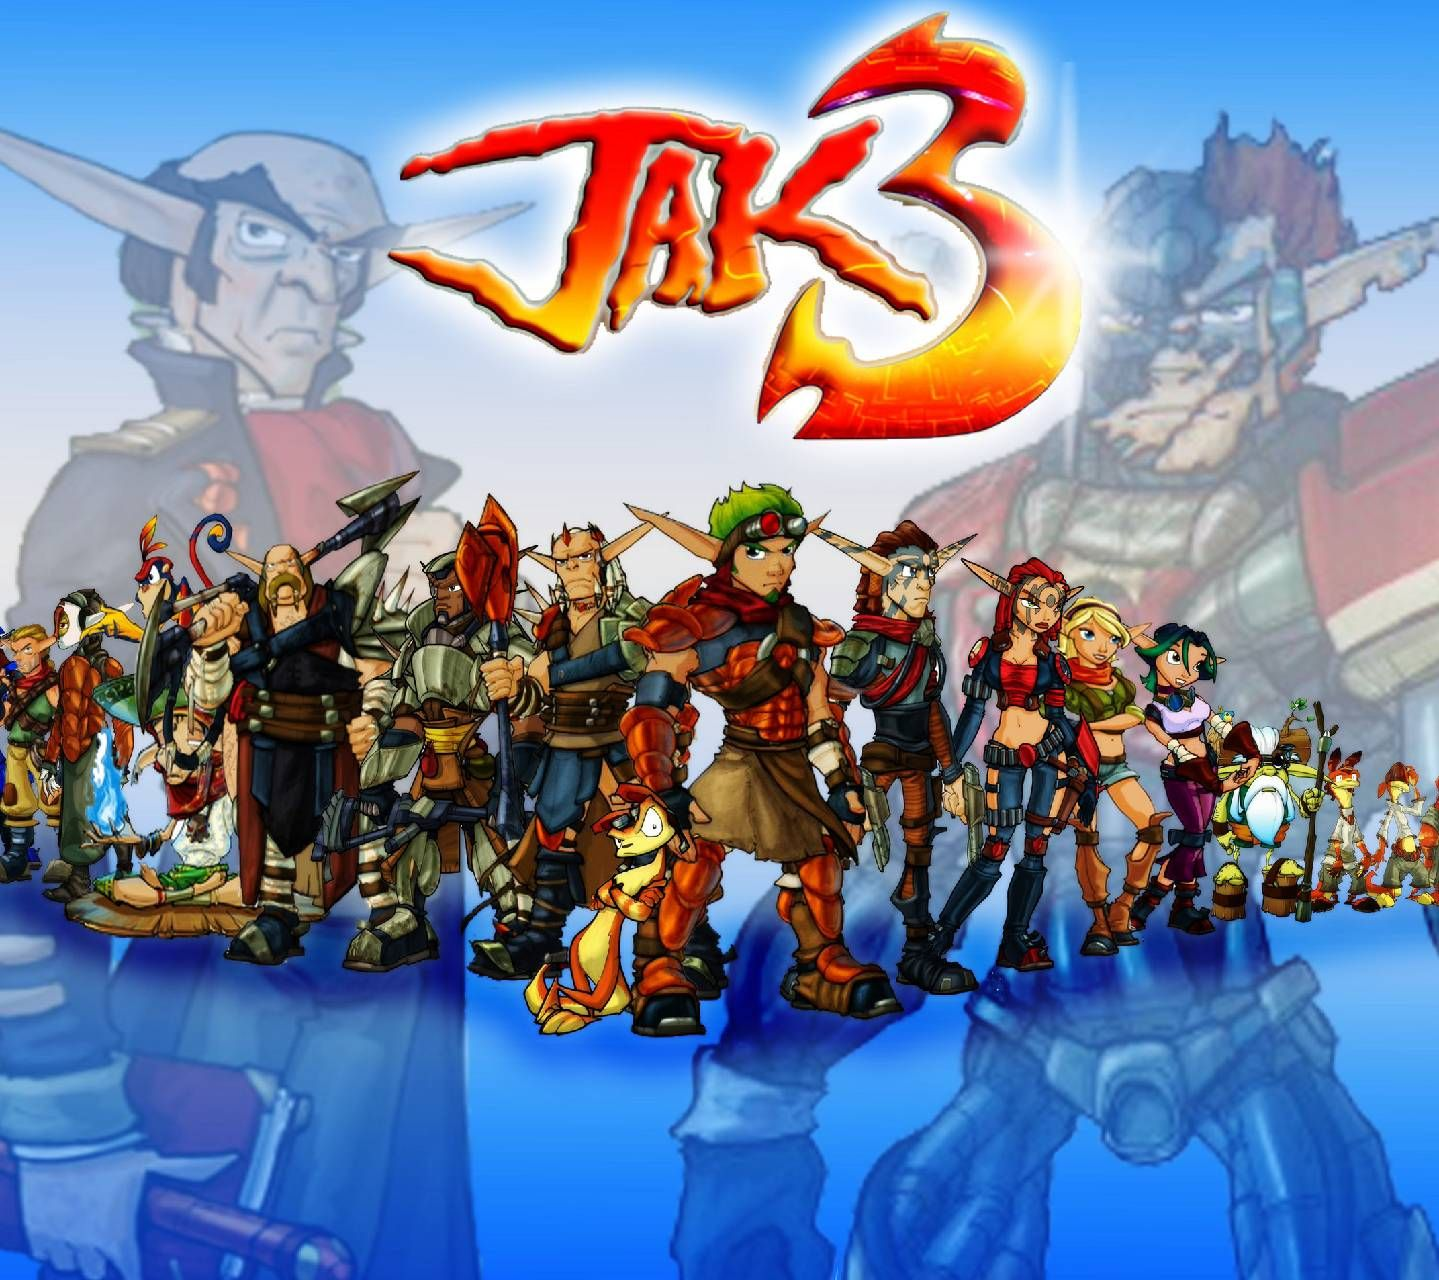 Download Jak 3 Wallpaper Wallpaper By Justrollin 2c Free On